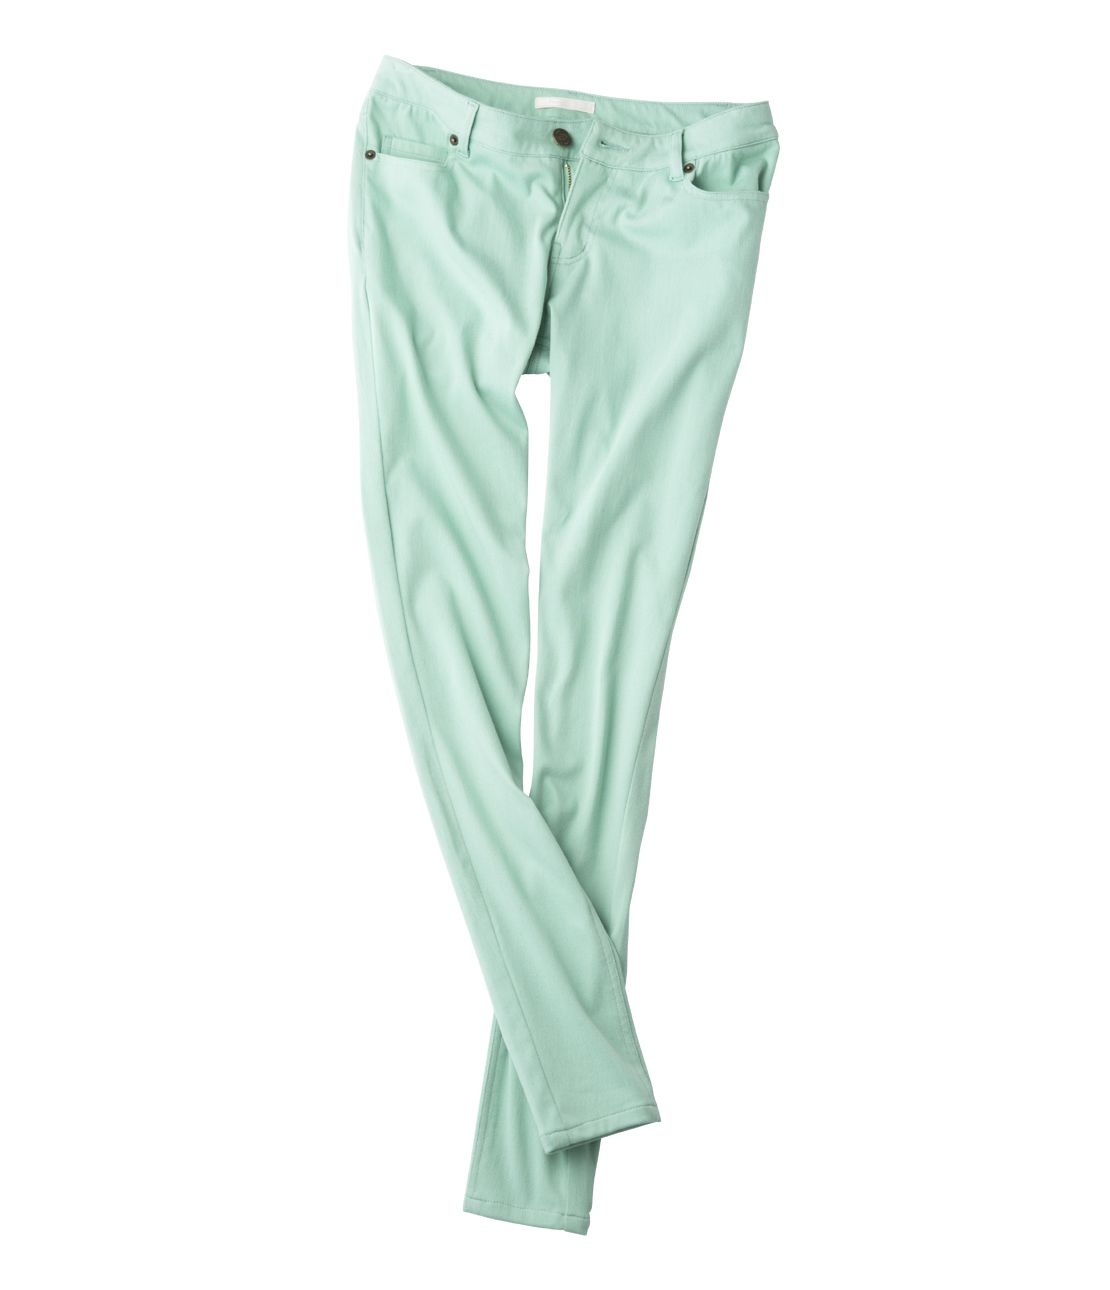 KULISH jade pants